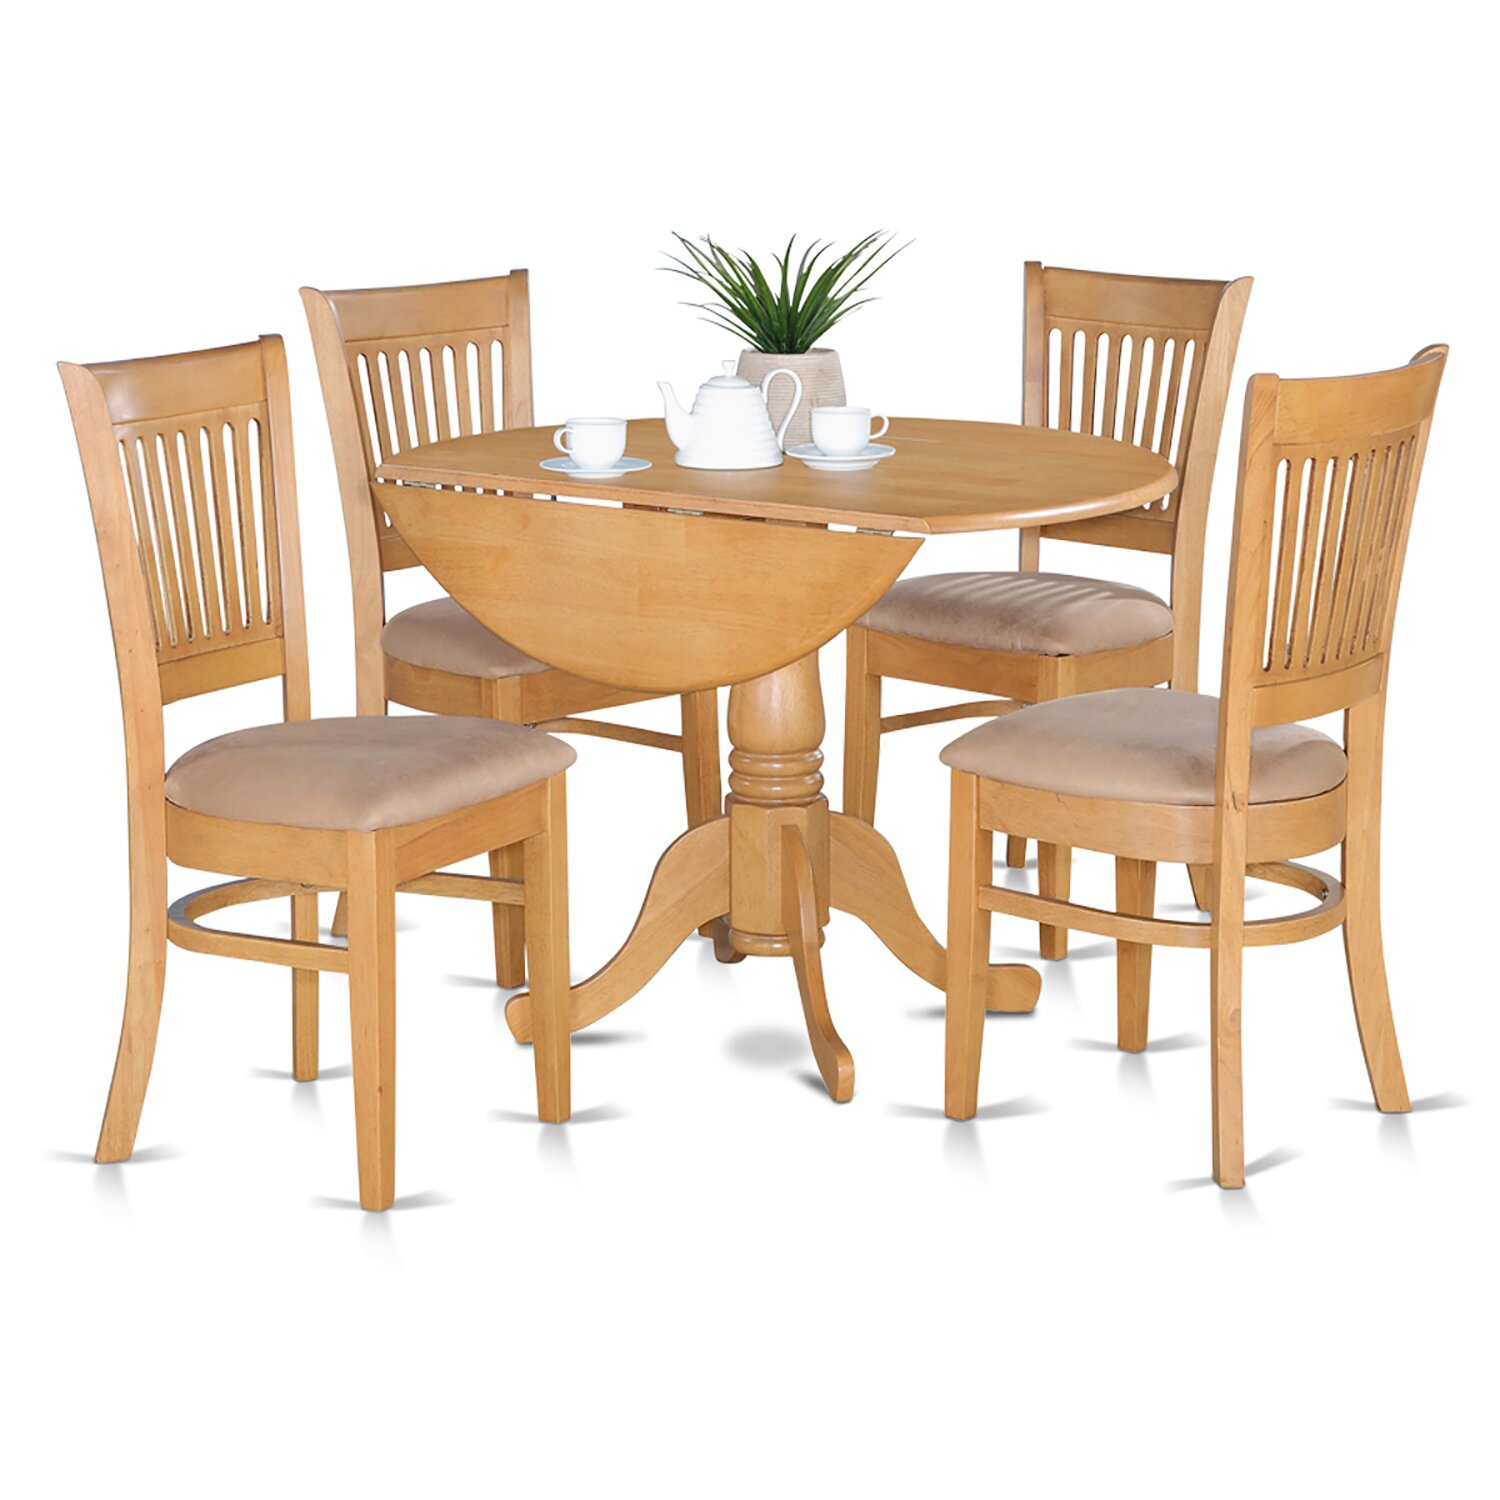 East west dublin 5 piece dining set reviews wayfair for Small kitchen table with 4 chairs